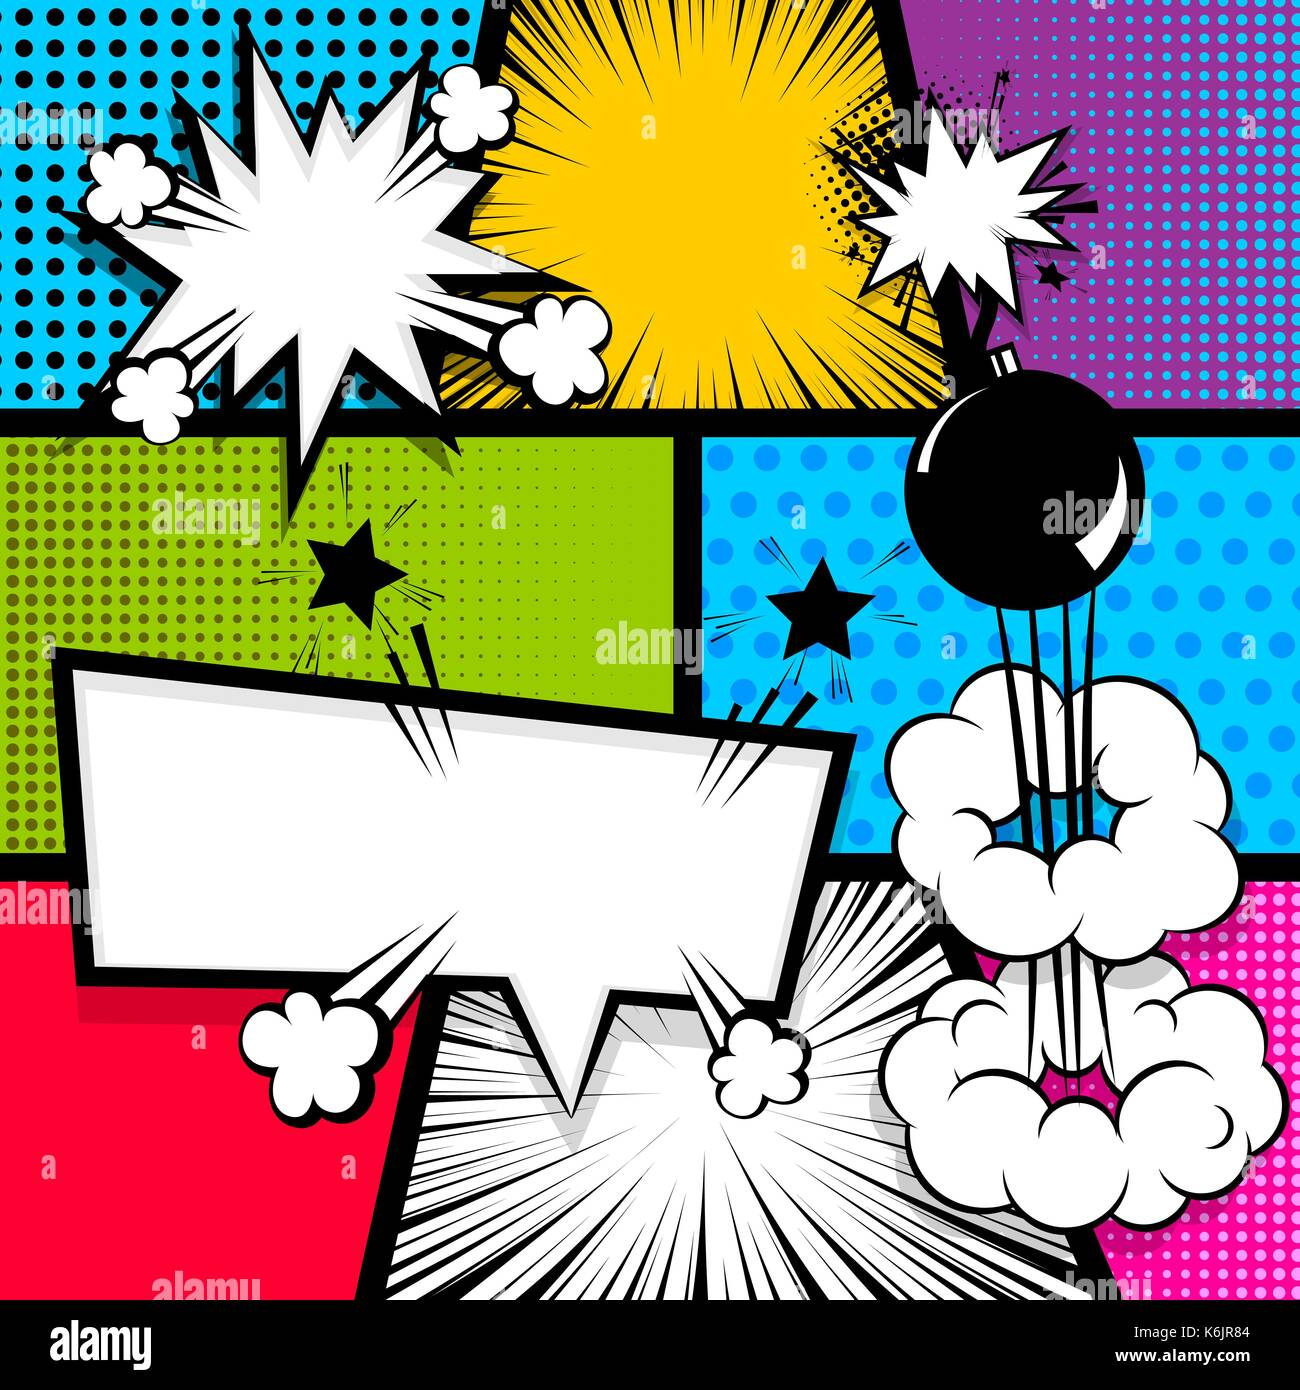 Pop art comics libro la portada de la revista plantilla. cartoon ...